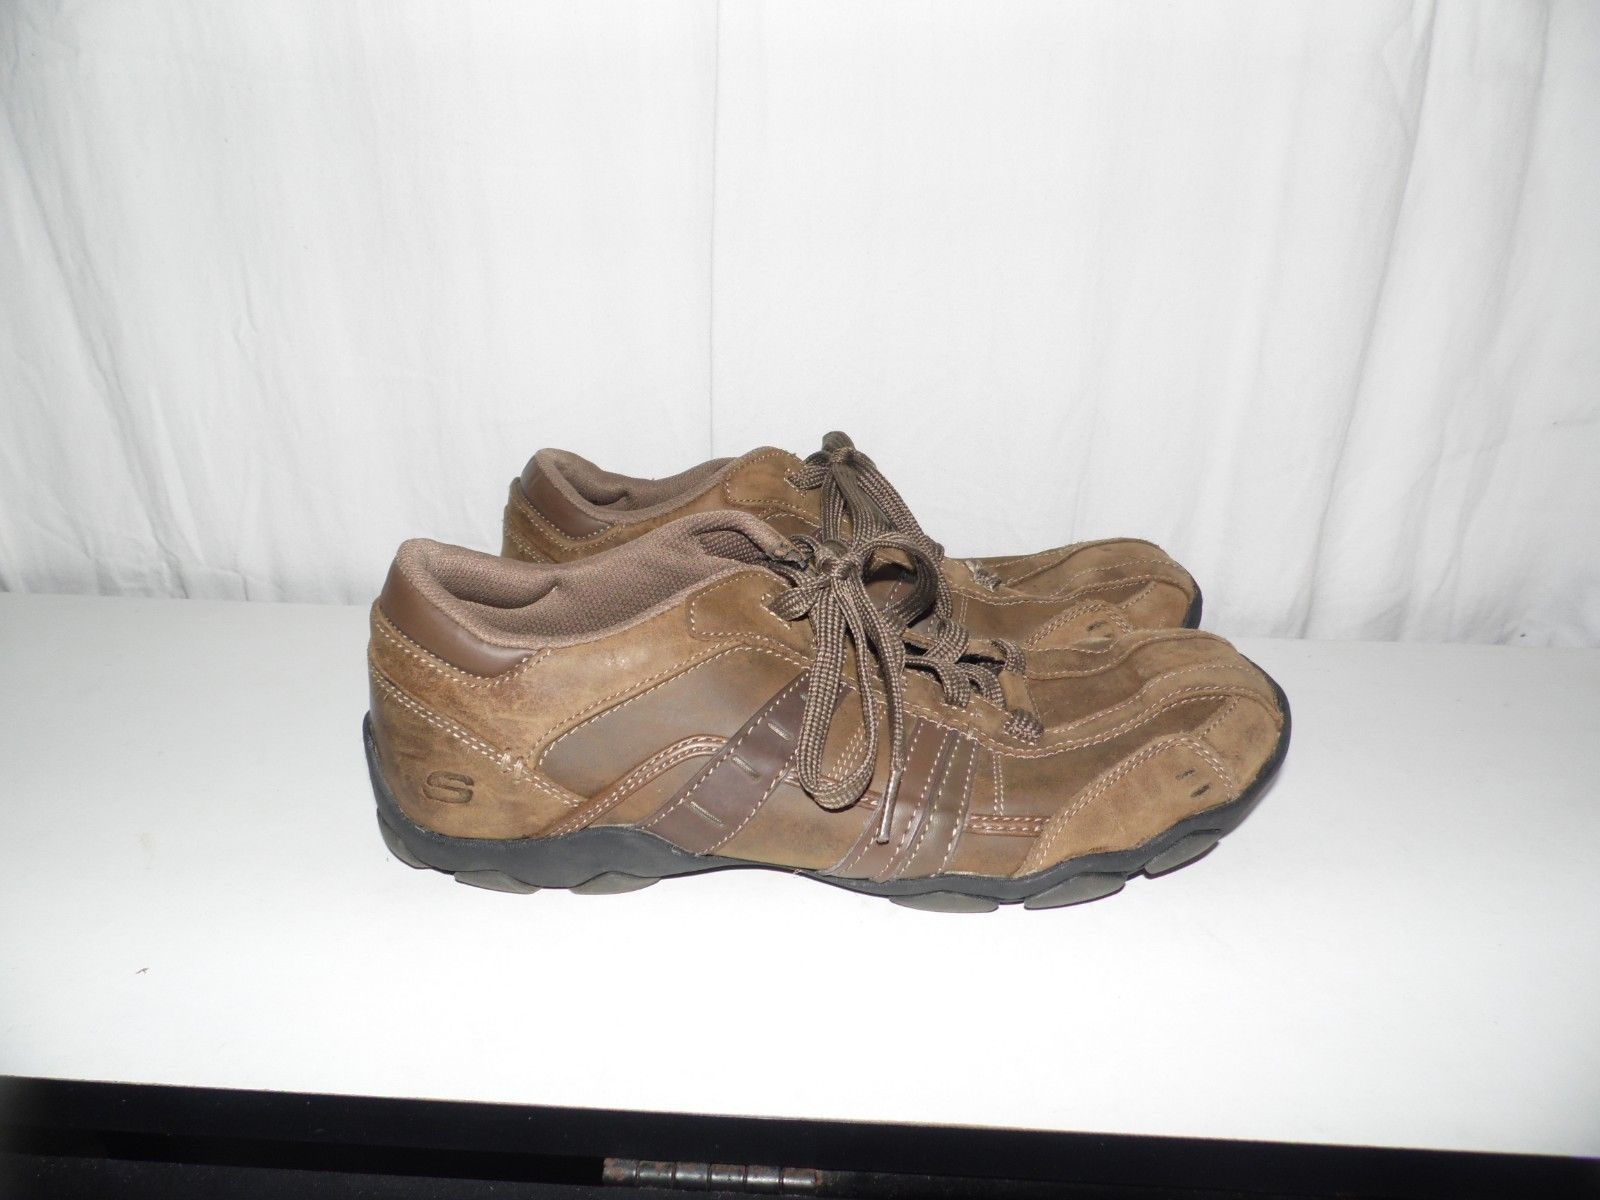 Skechers Leather Brown Casual Sneakers Shoes 62607 Size 10.5